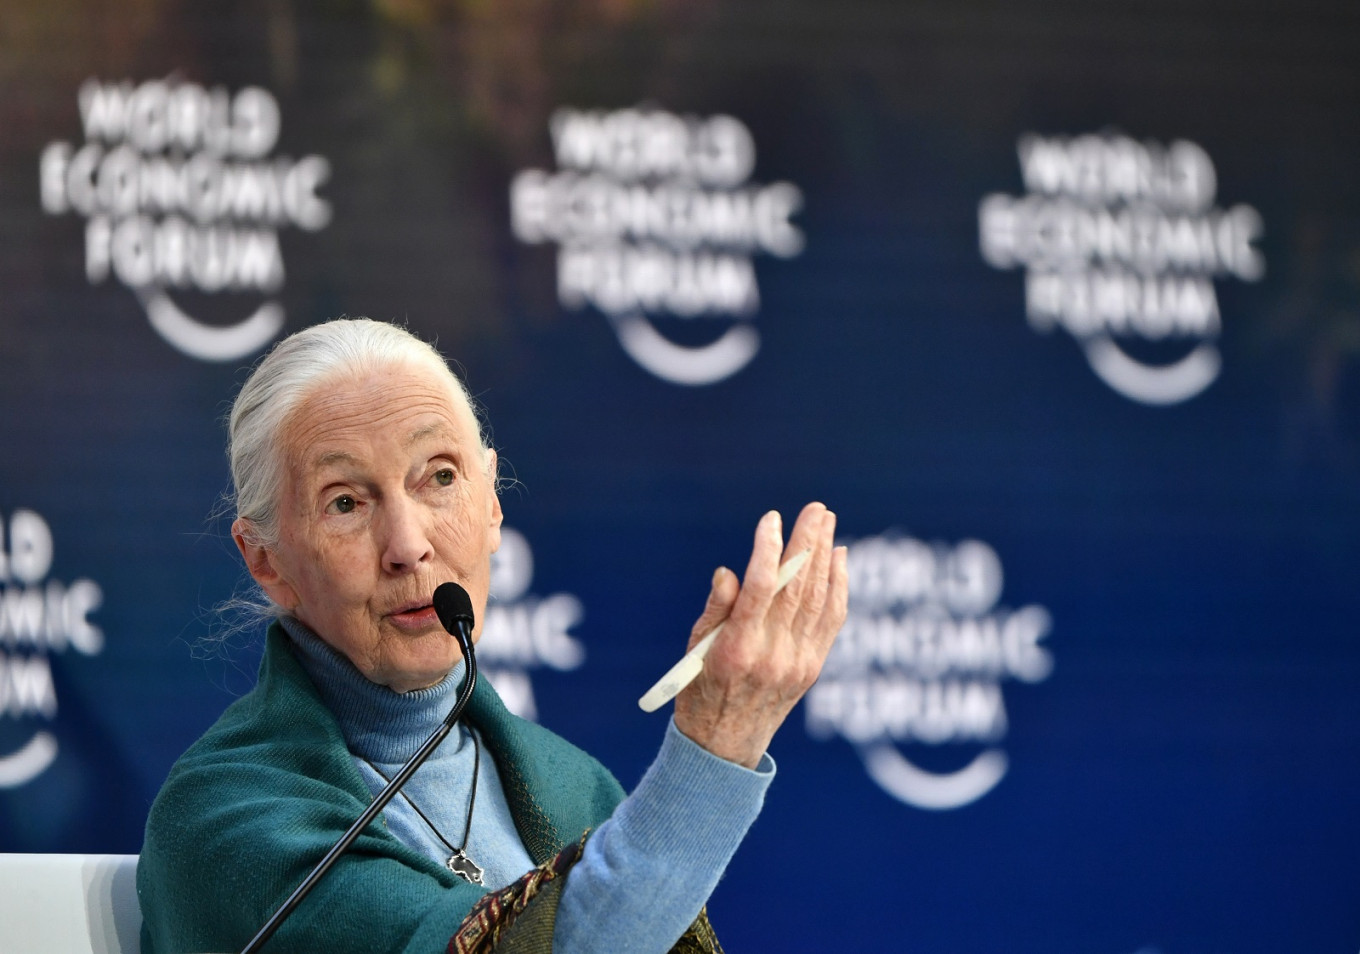 Jane Goodall says 'disrespect for animals' caused pandemic